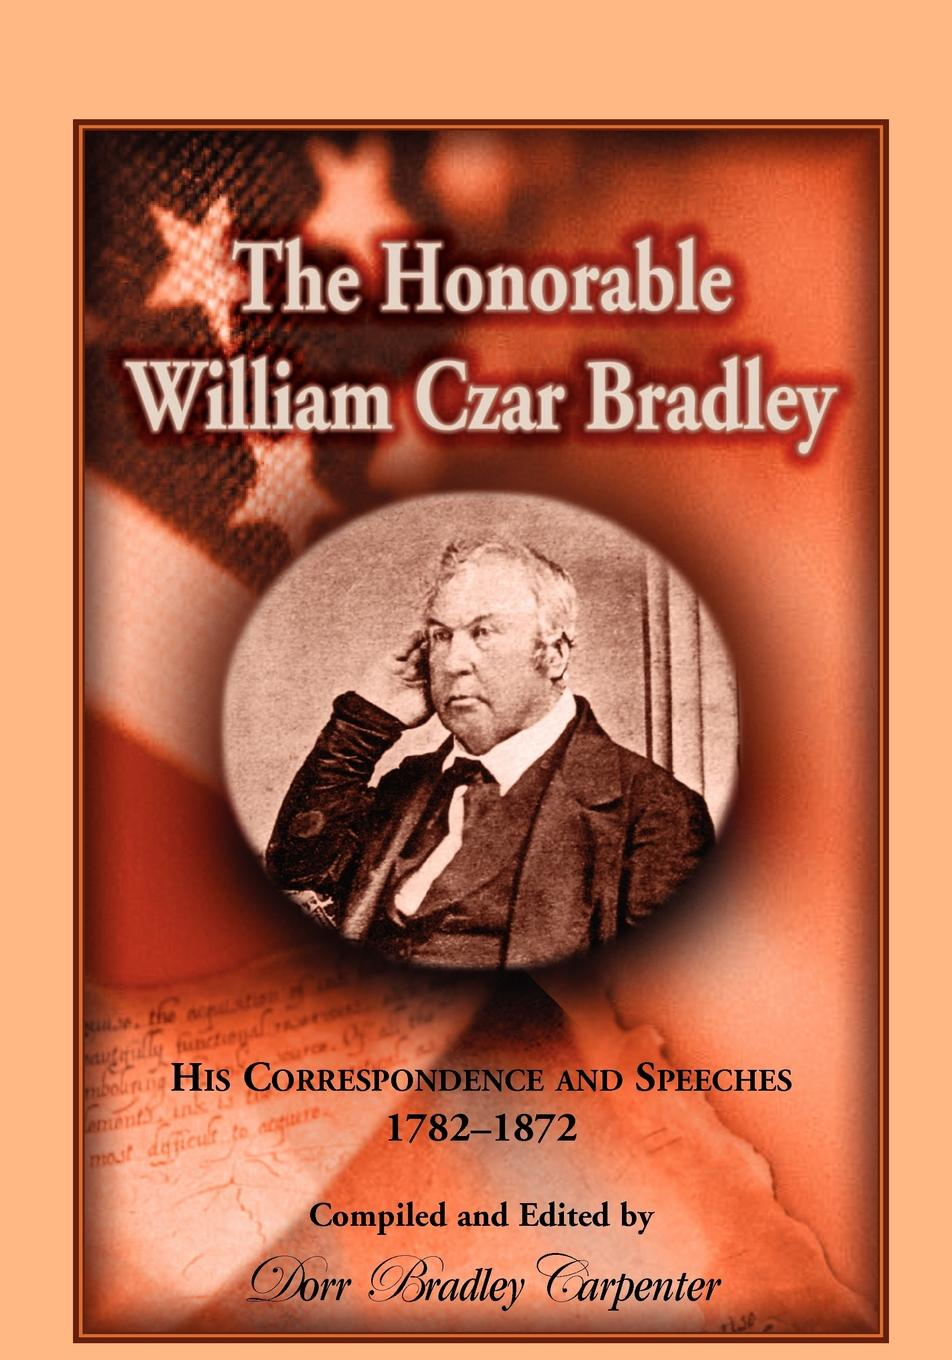 Dorr B. Carpenter The Honorable William Czar Bradley. His Correspondence and Speeches, 1782-1872 allen bradley 1756 a7 b 1756a7 controllogix 7 slots chassis new and original 100